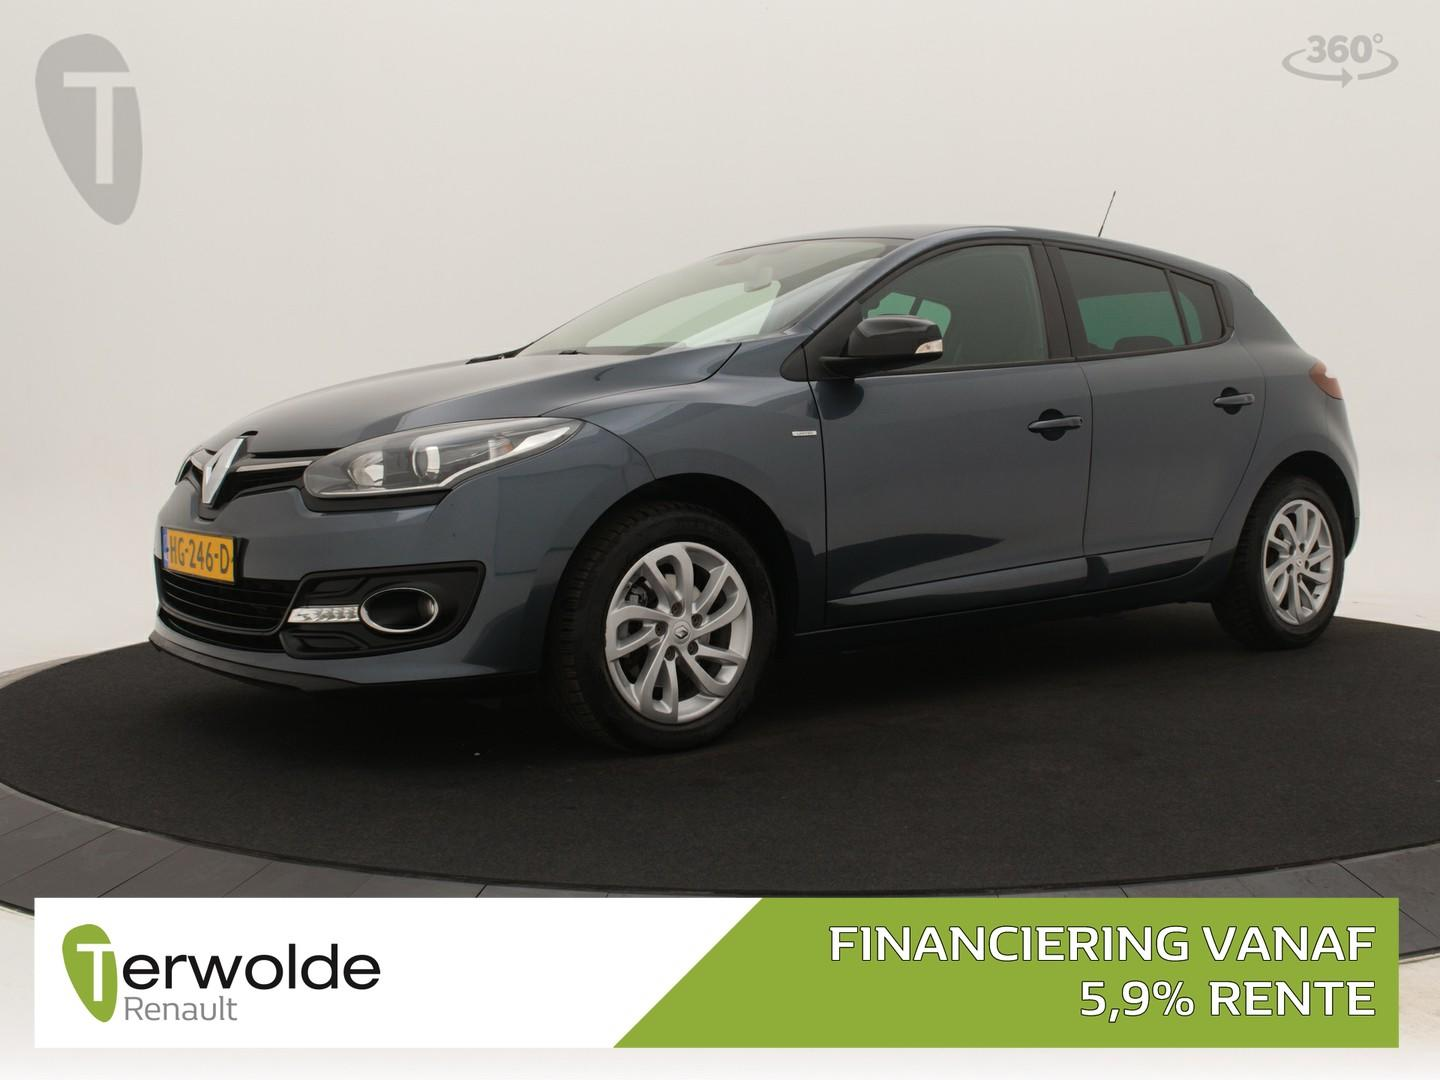 Renault Mégane 1.2 tce 115pk 5drs limited full map navigatie i climate control i cruise control